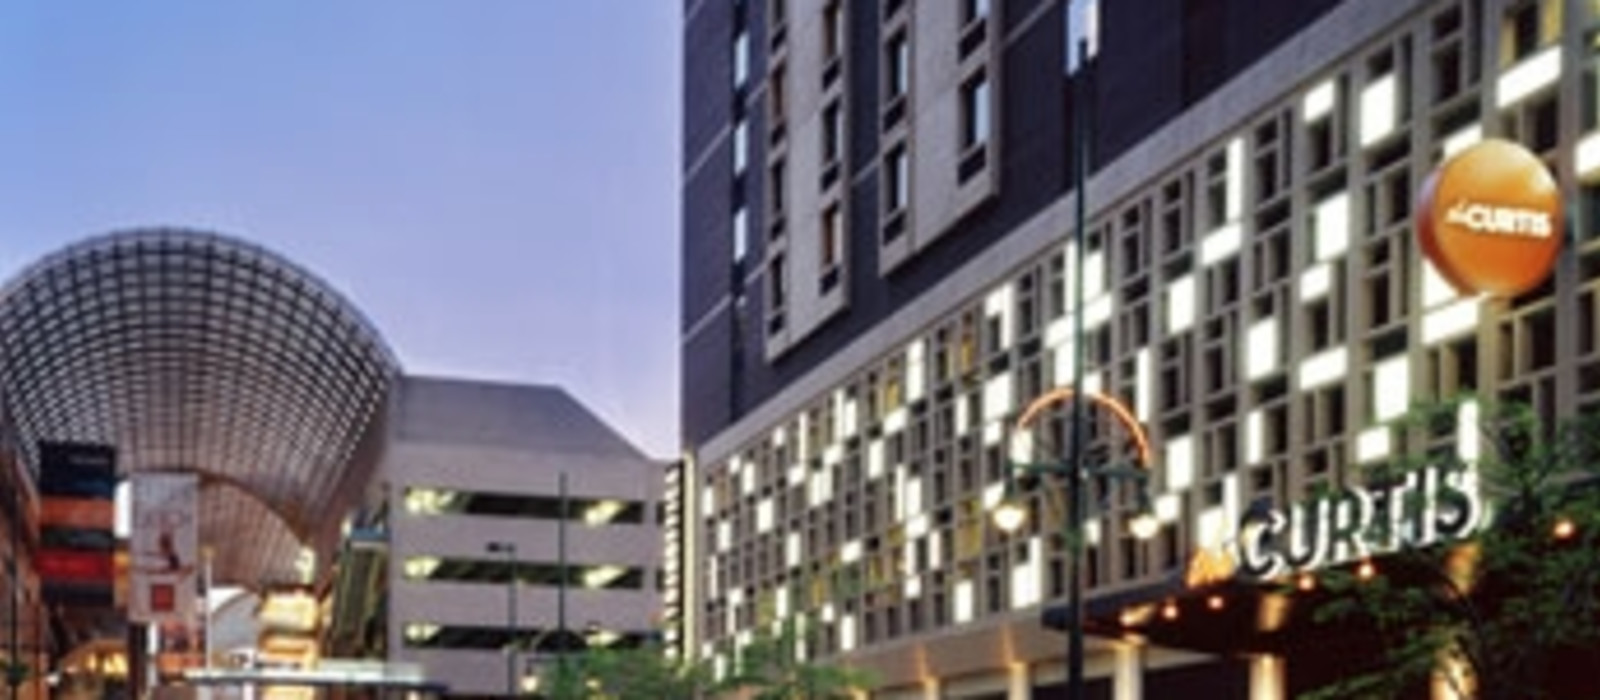 Hotel The Curtis, A Doubletree by Hilton USA